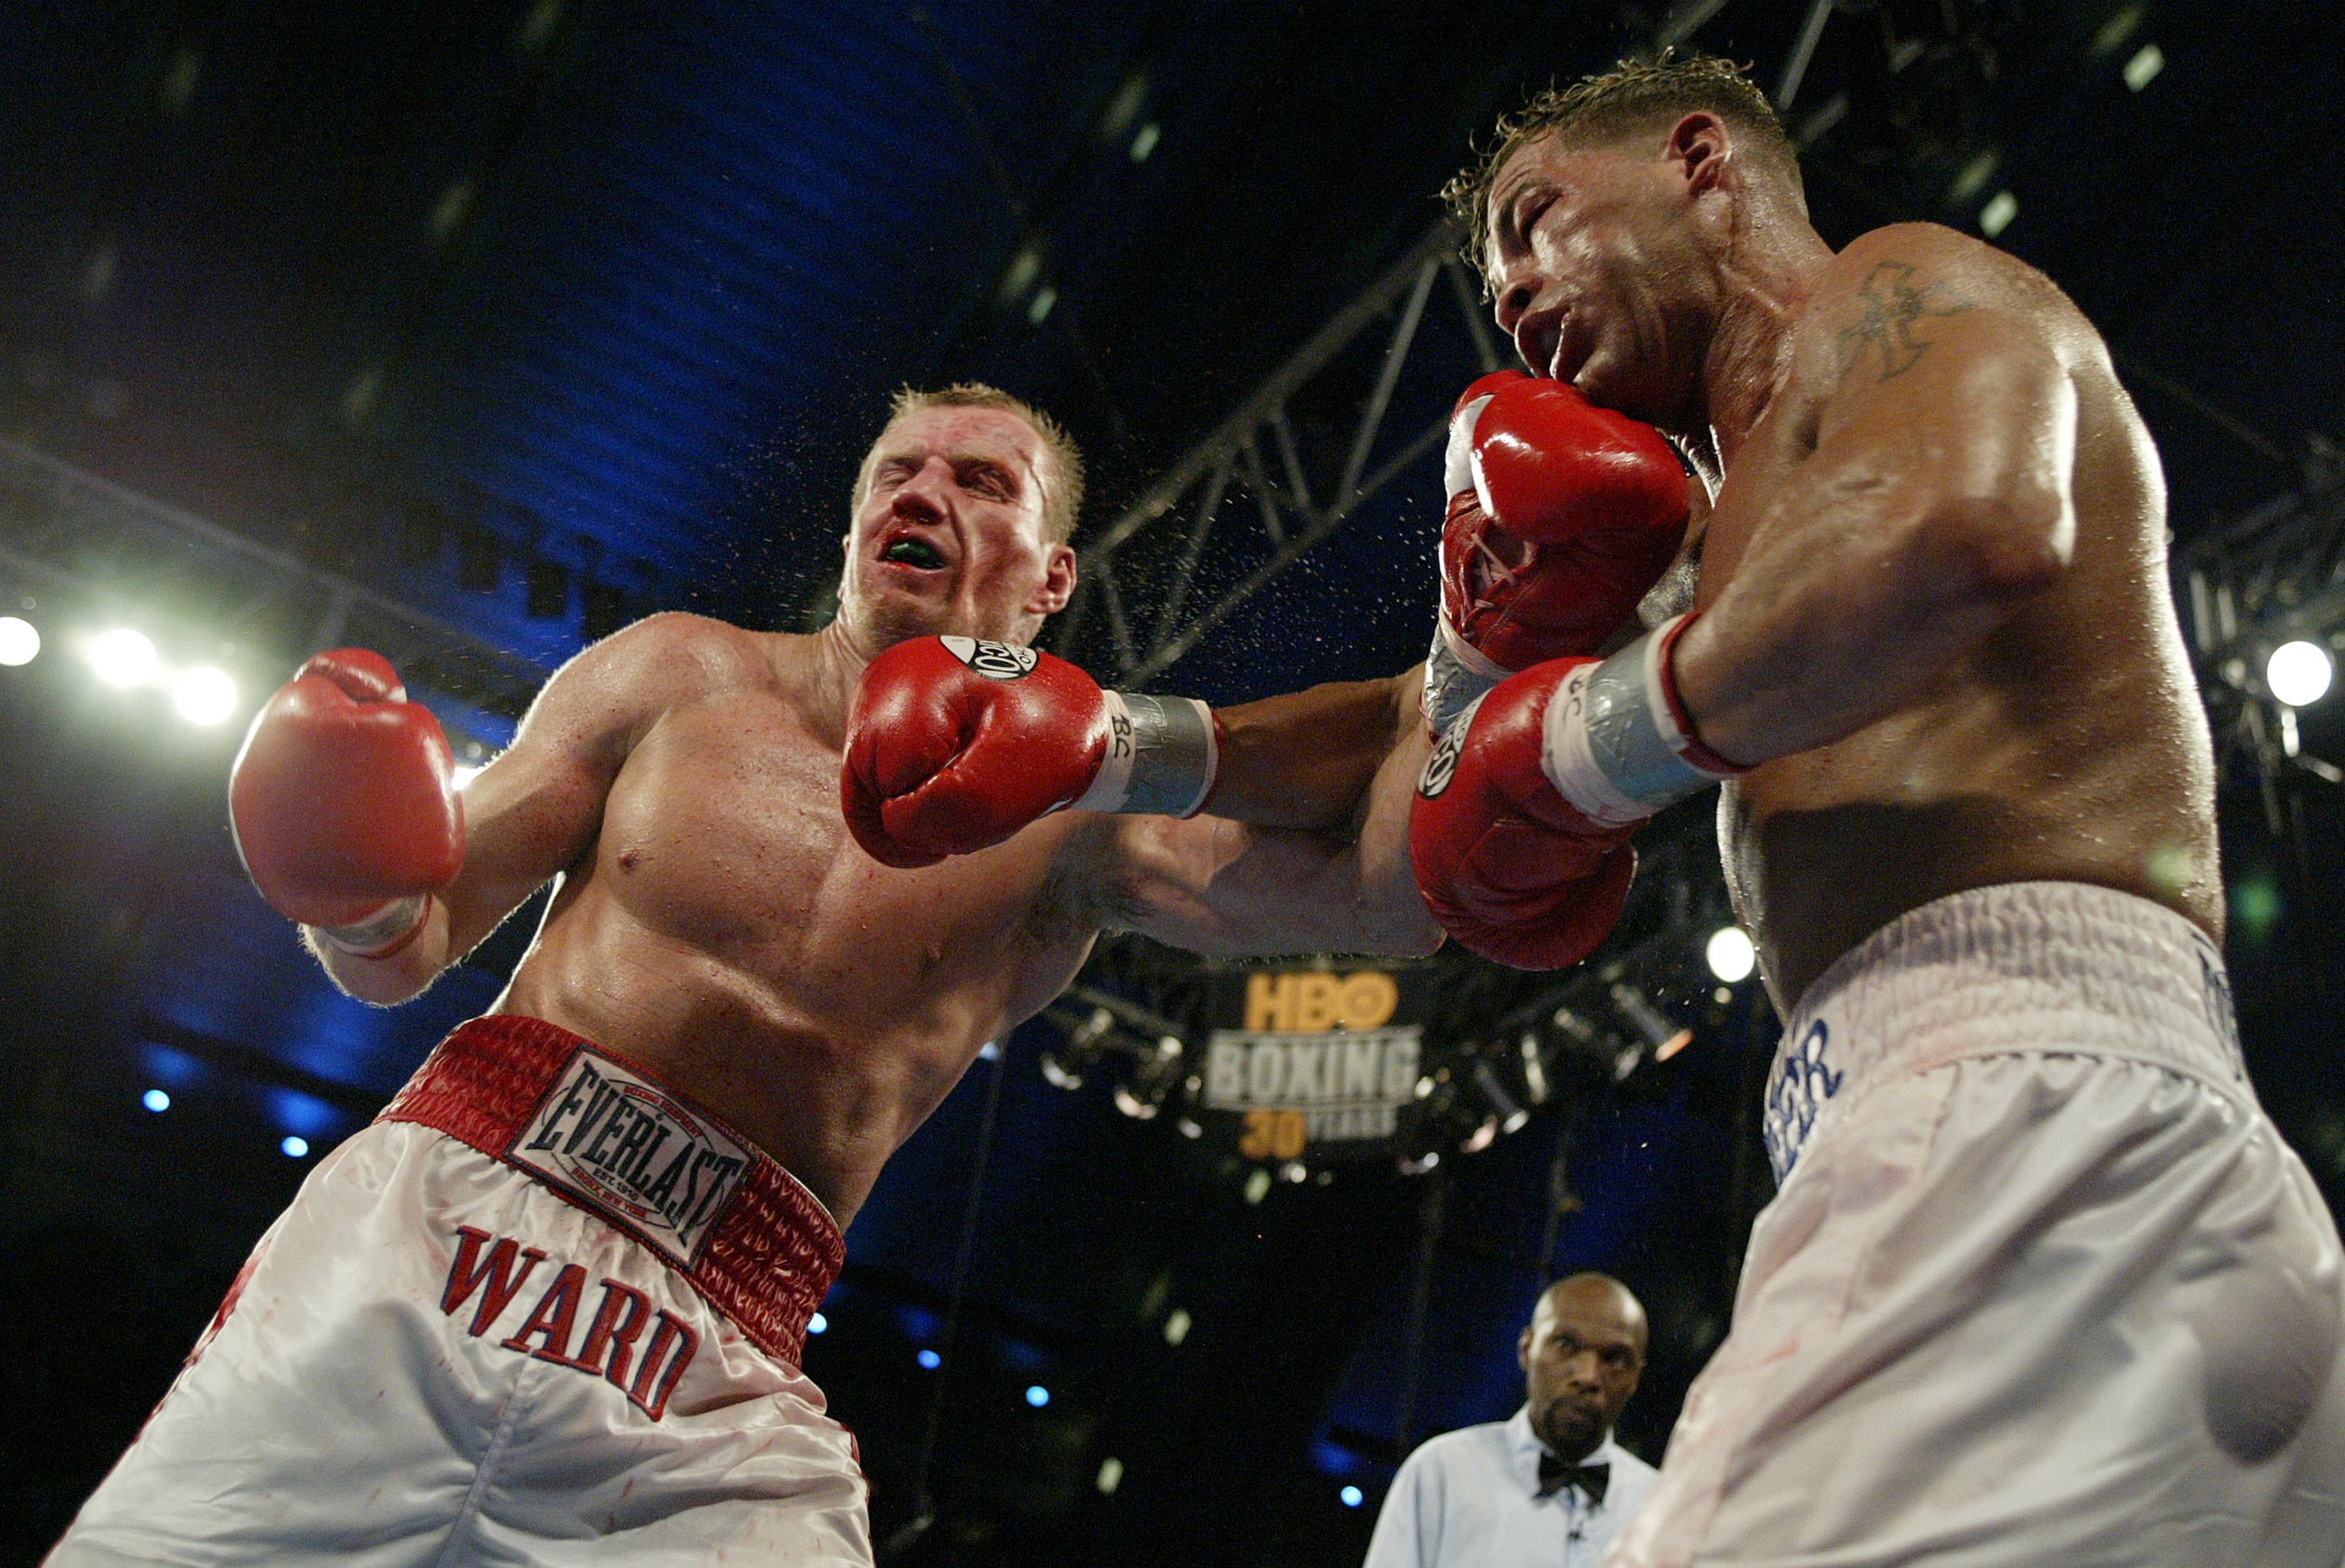 ATLANTIC CITY, NJ - JUNE 7:  Arturo Gatti (L) and Micky Ward trade punches during their Junior Welterweight bout at Boardwalk Hall on June 7, 2003 in Atlantic City, New Jersey. Gatti won a unanimous decision. (Photo by Al Bello/Getty  Images)